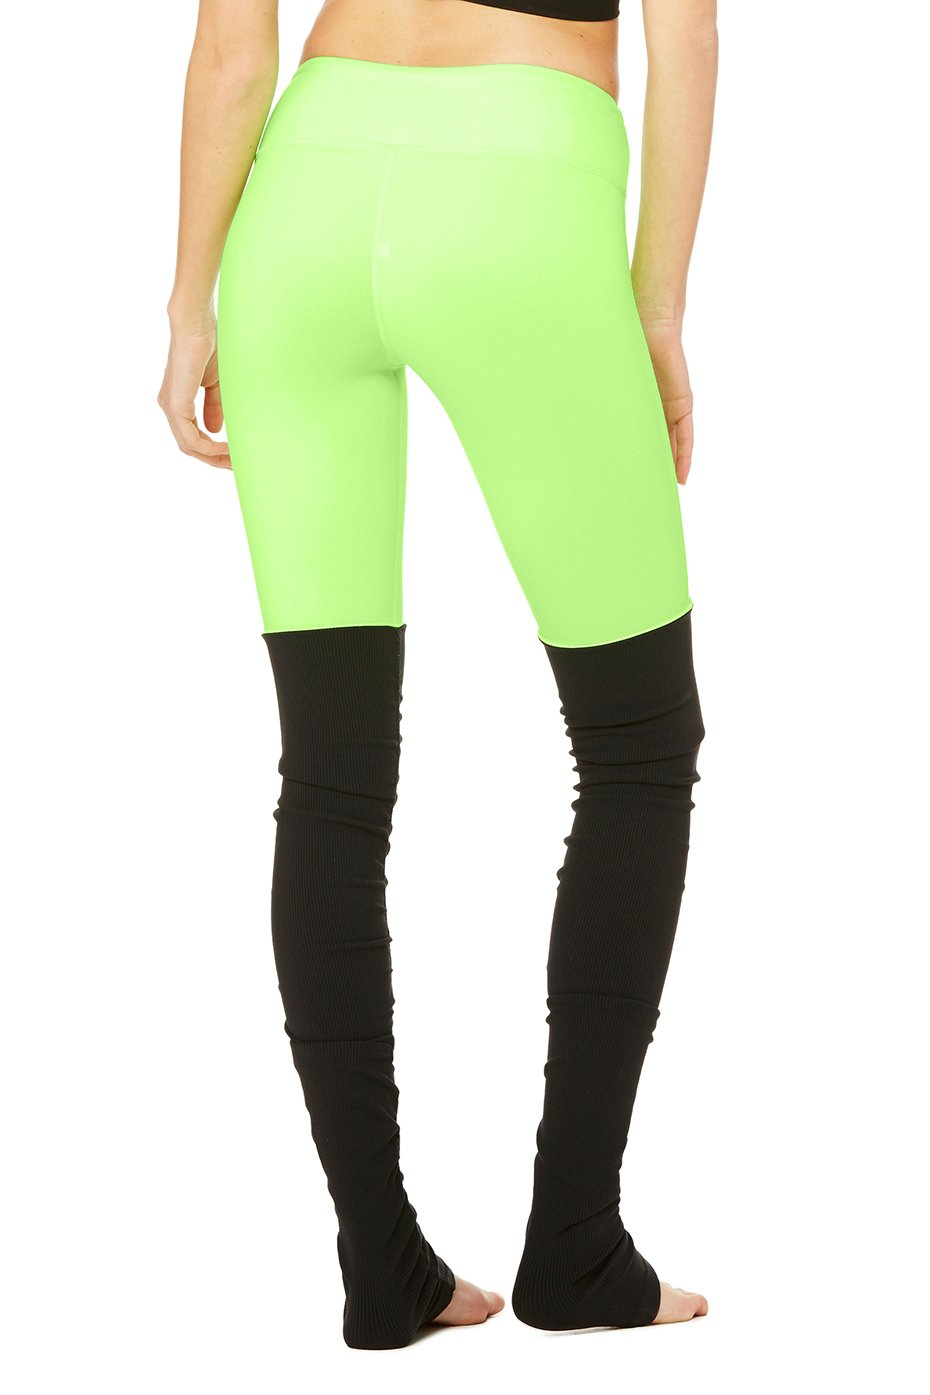 Goddess Legging - Solid